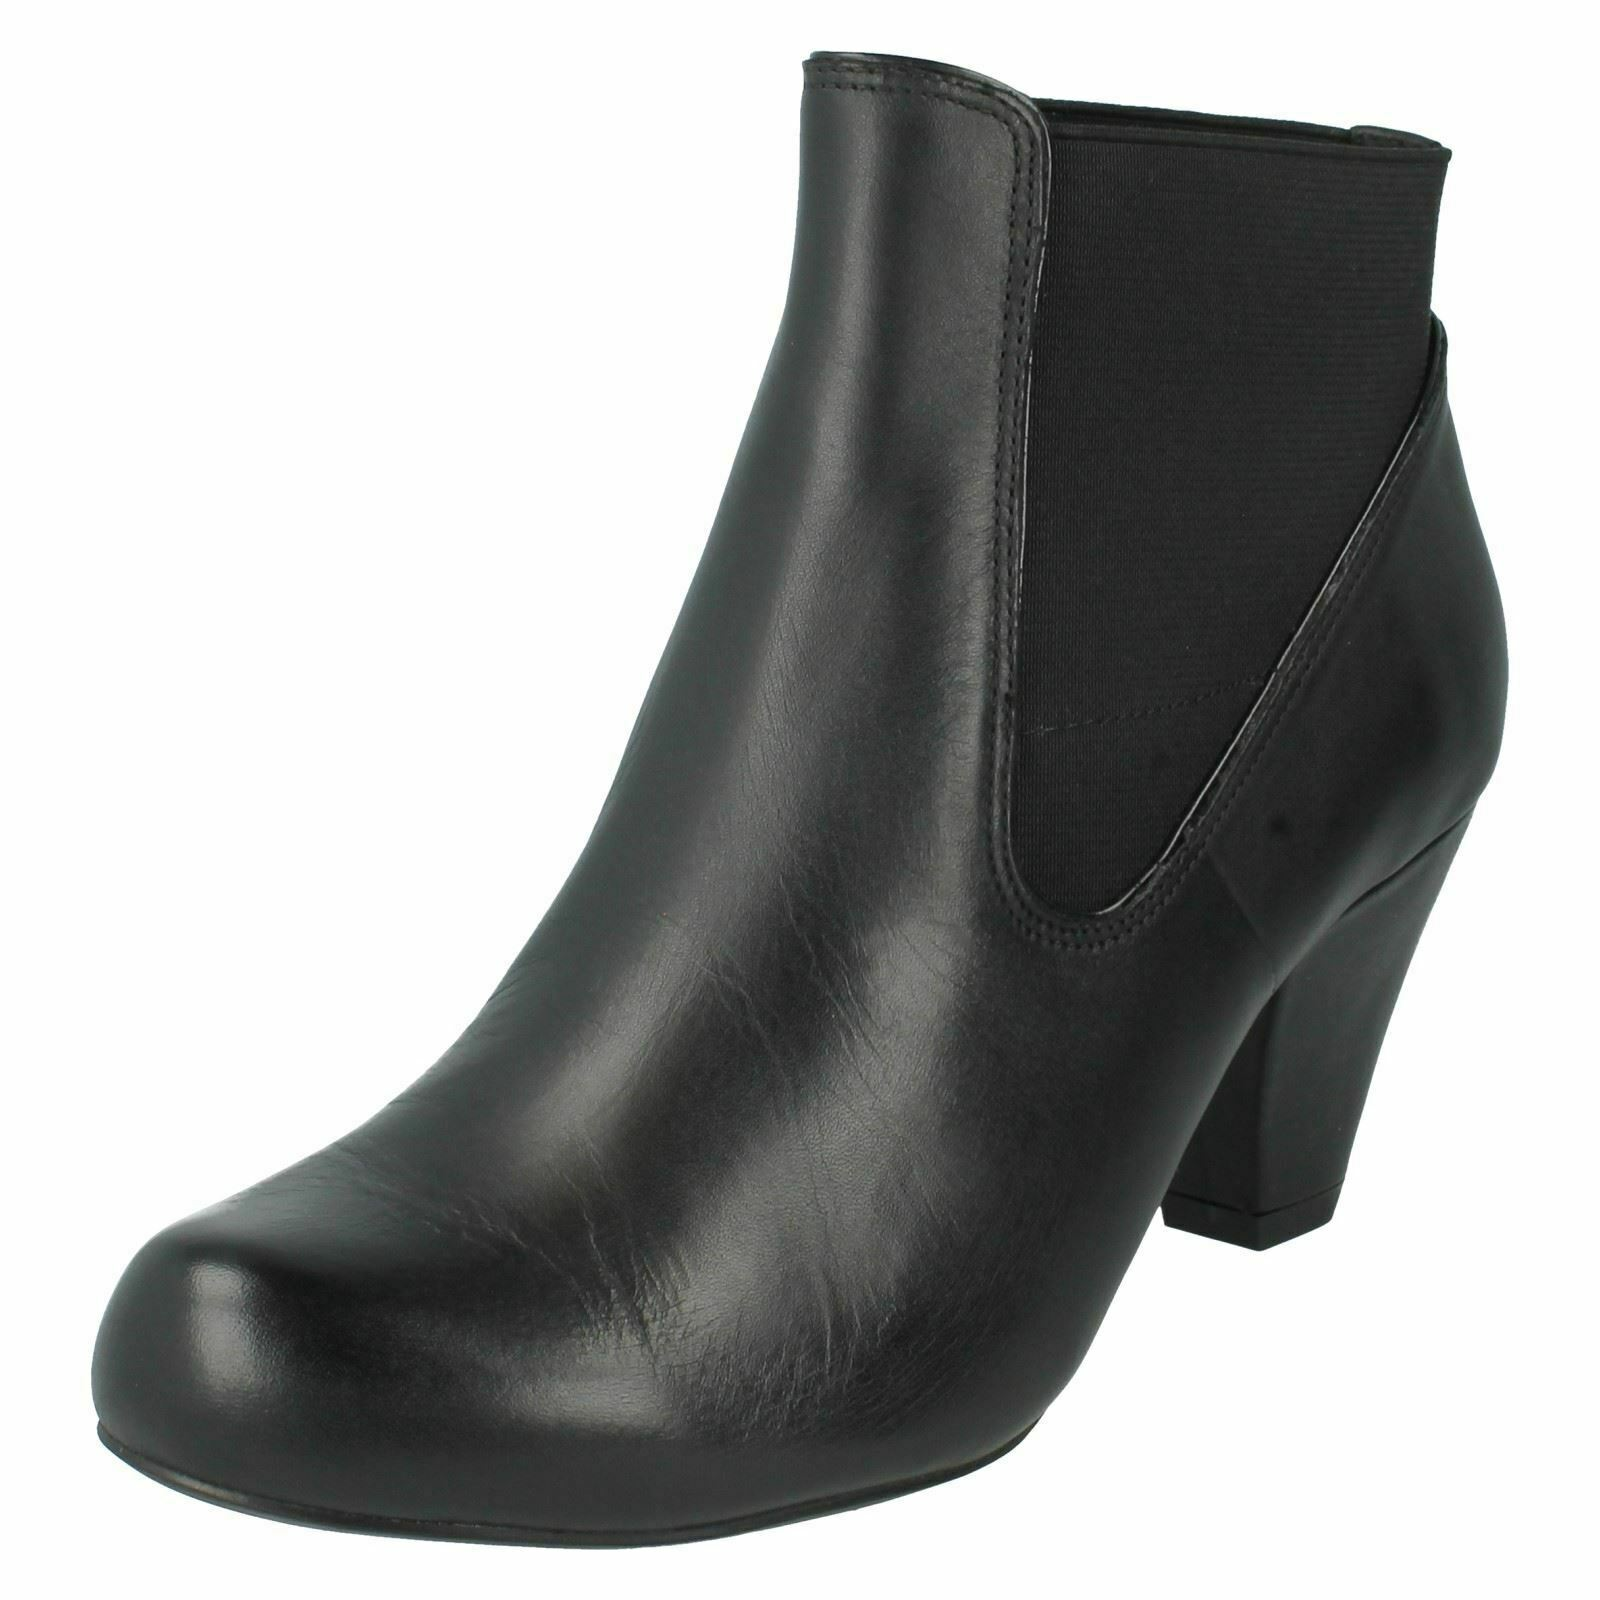 Ladies Clarks Ankle Boots - Coolest Babe